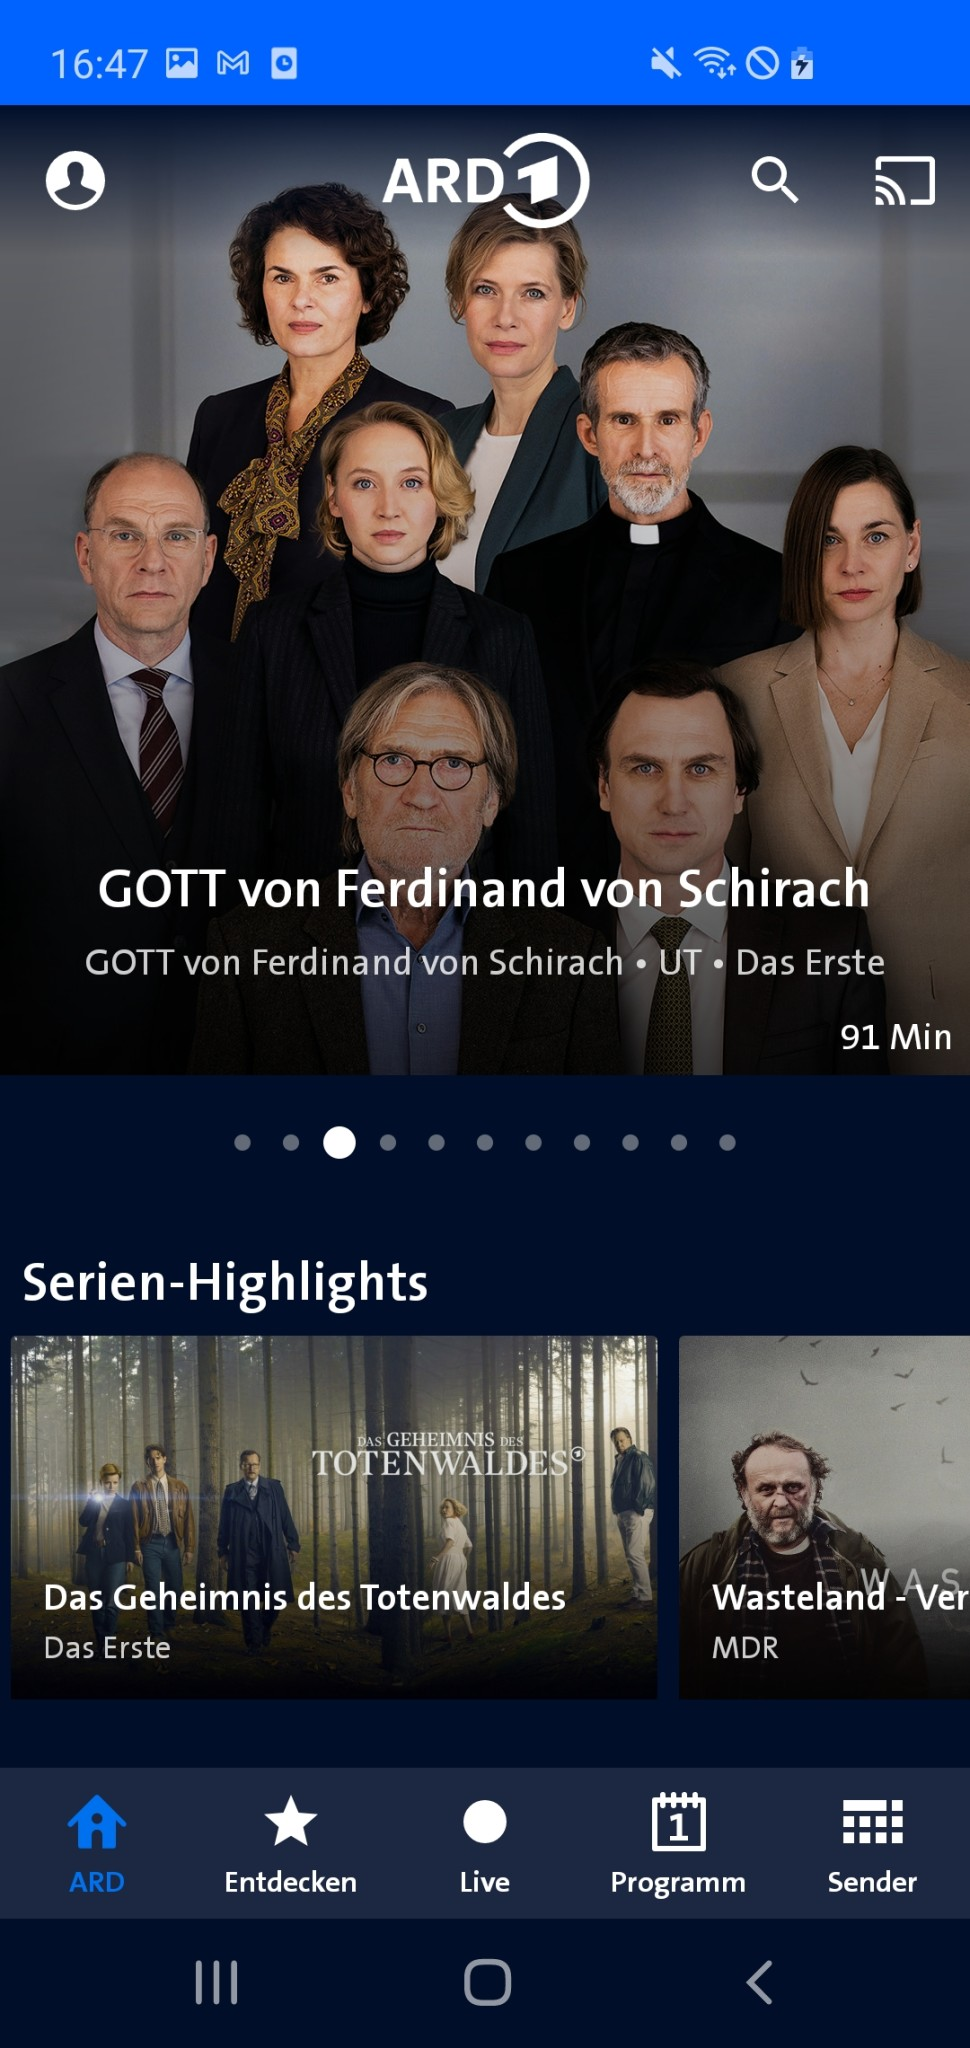 Screenshot 1 - ARD Mediathek (Android-App)